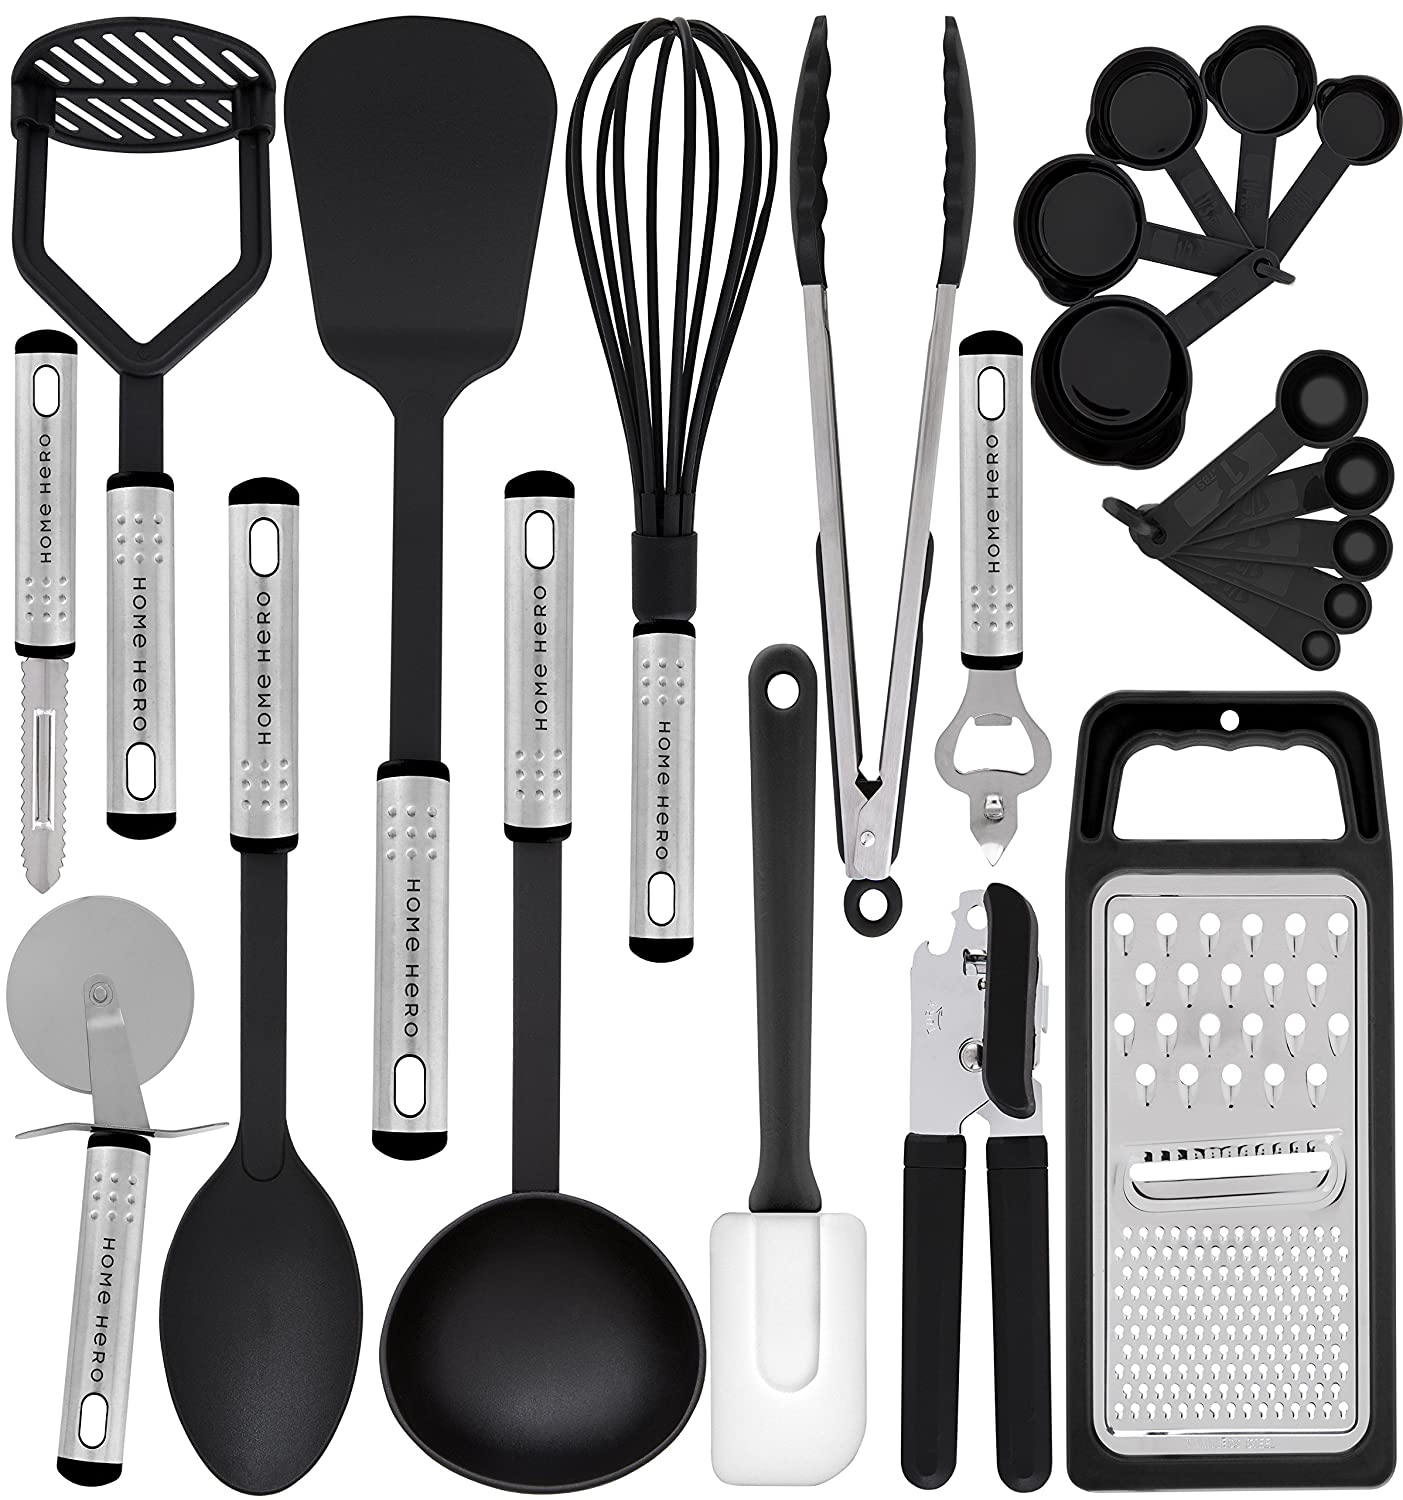 HomeHero Kitchen Utensil Set - 23 Nylon Cooking Utensils - Kitchen Utensils with Spatula - Kitchen Gadgets Cookware Set - Best Kitchen Tool Set Gift